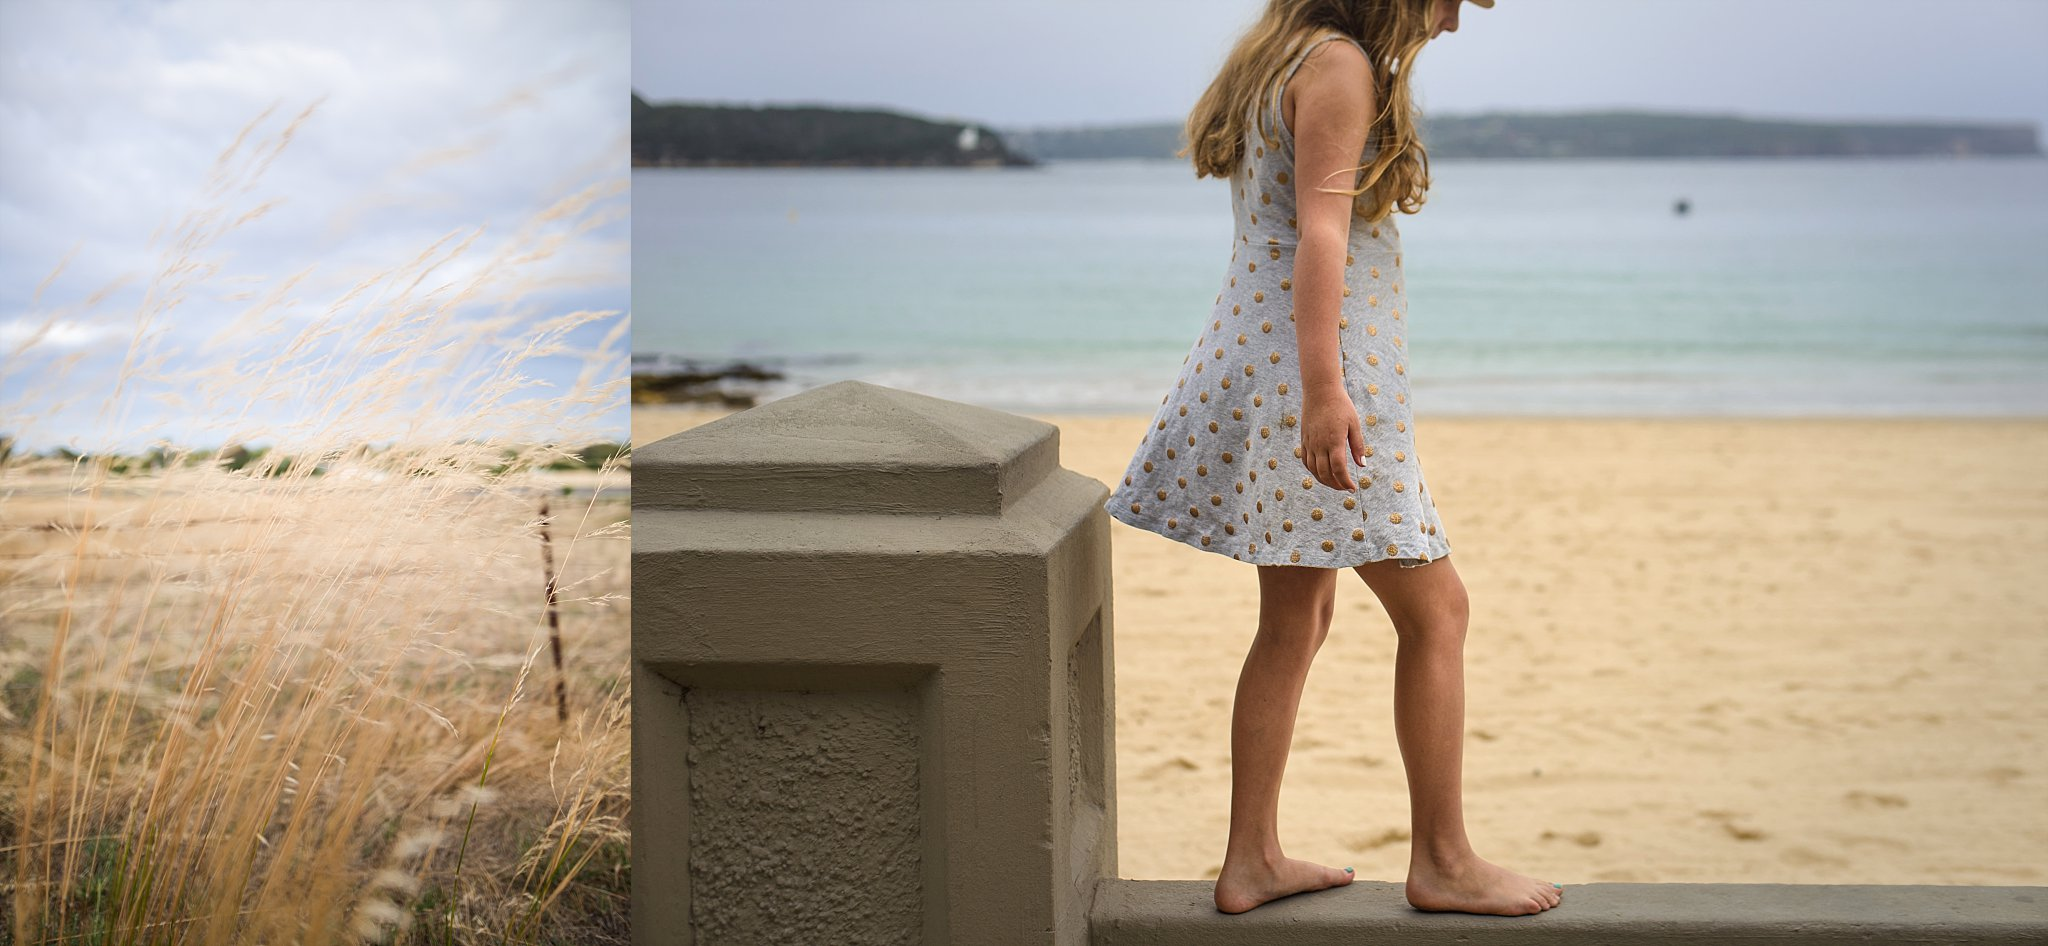 Diptych celebrating the blues and yellows of summer by Cindy Cavanagh, a lifestyle photographer in the Hills District of Sydney.